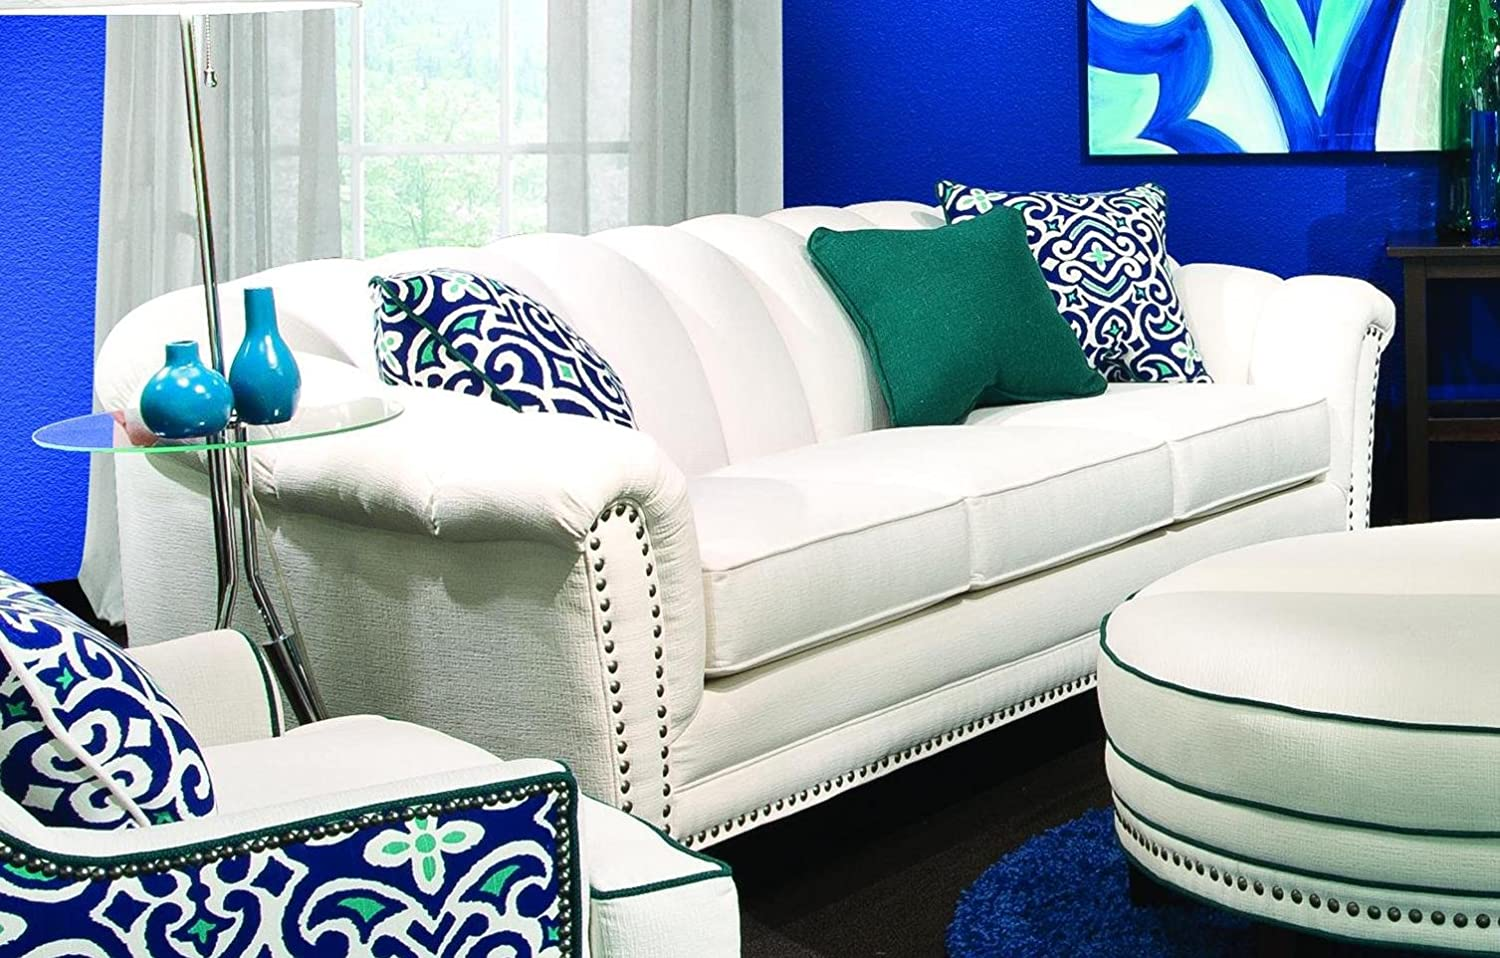 Chelsea Home Furniture Channel Sofa - Heavenly Oyster with 2 18accent Pillows and 1 16 Emerald accent Pillow included